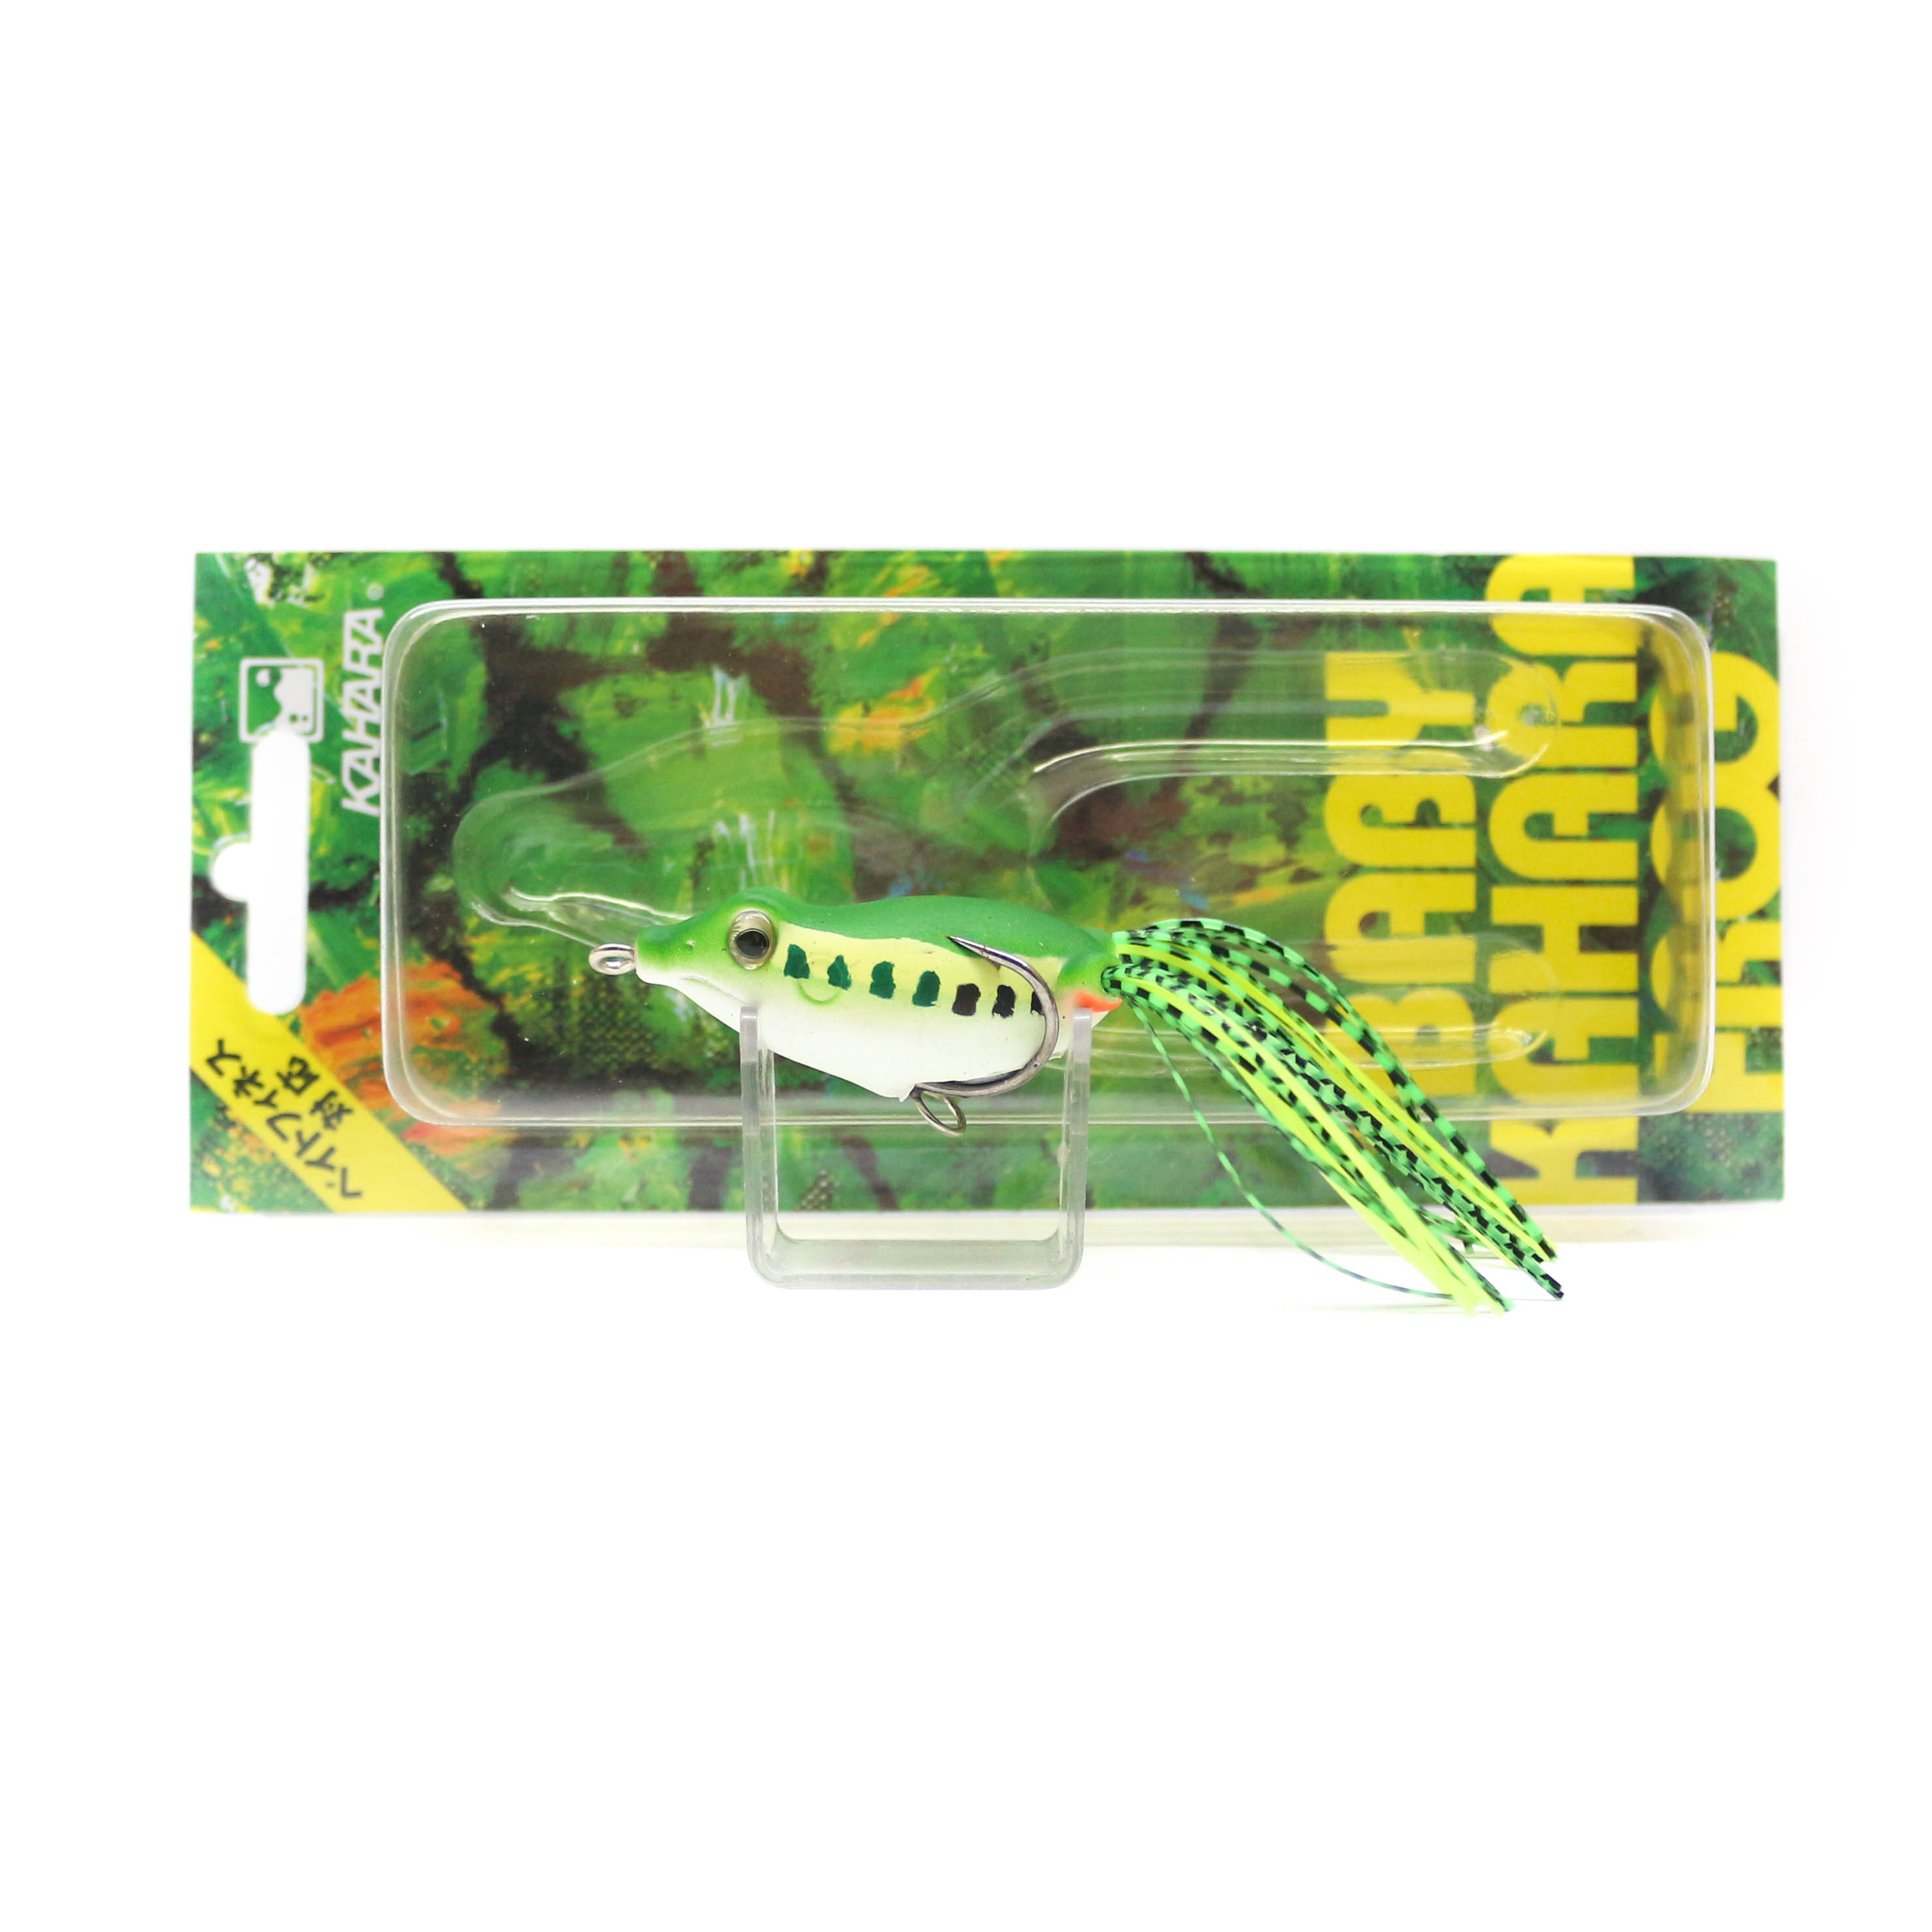 Kahara Baby Frog Soft Plastic Floating Lure 8 (1840)